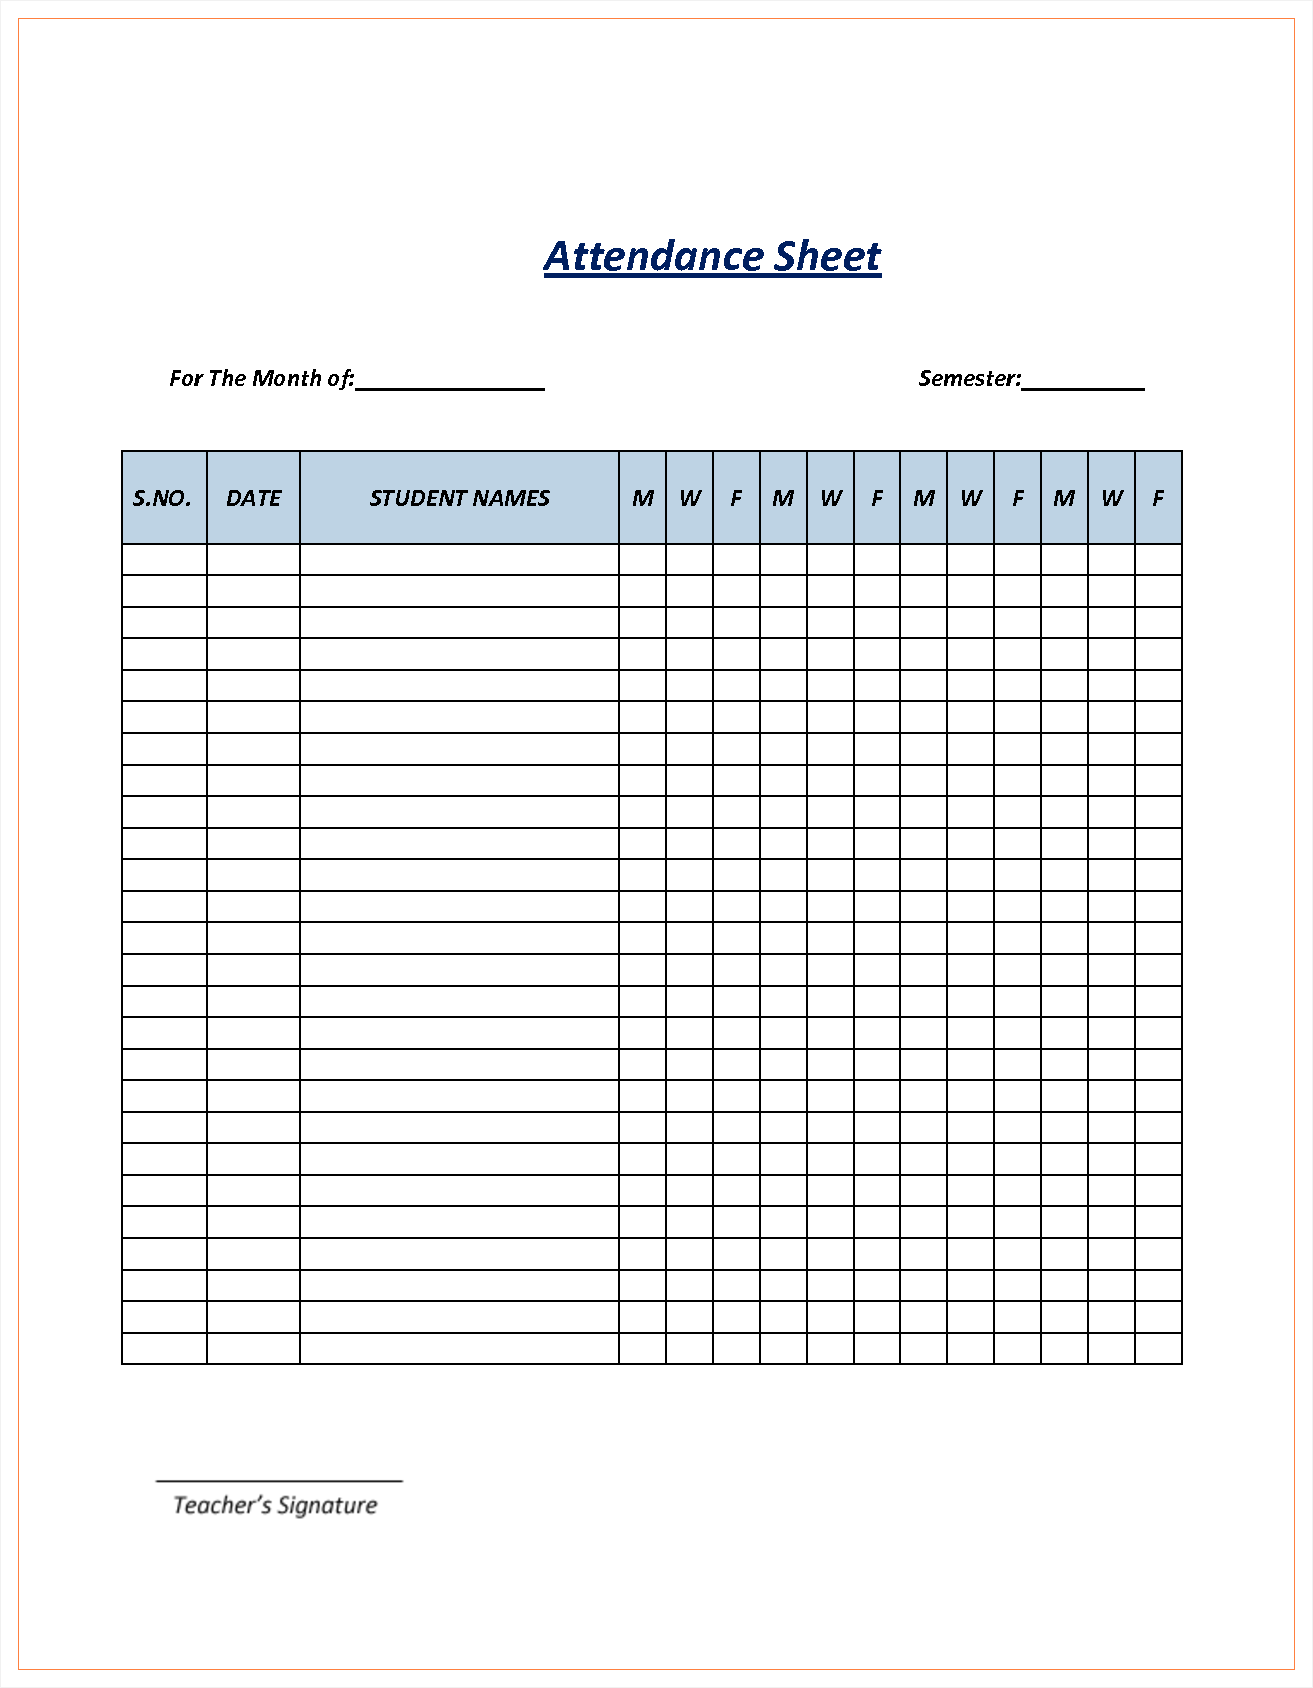 Sample Expense Report Excel and 5 attendance Record Template Expense Report Png 51kb Monthly